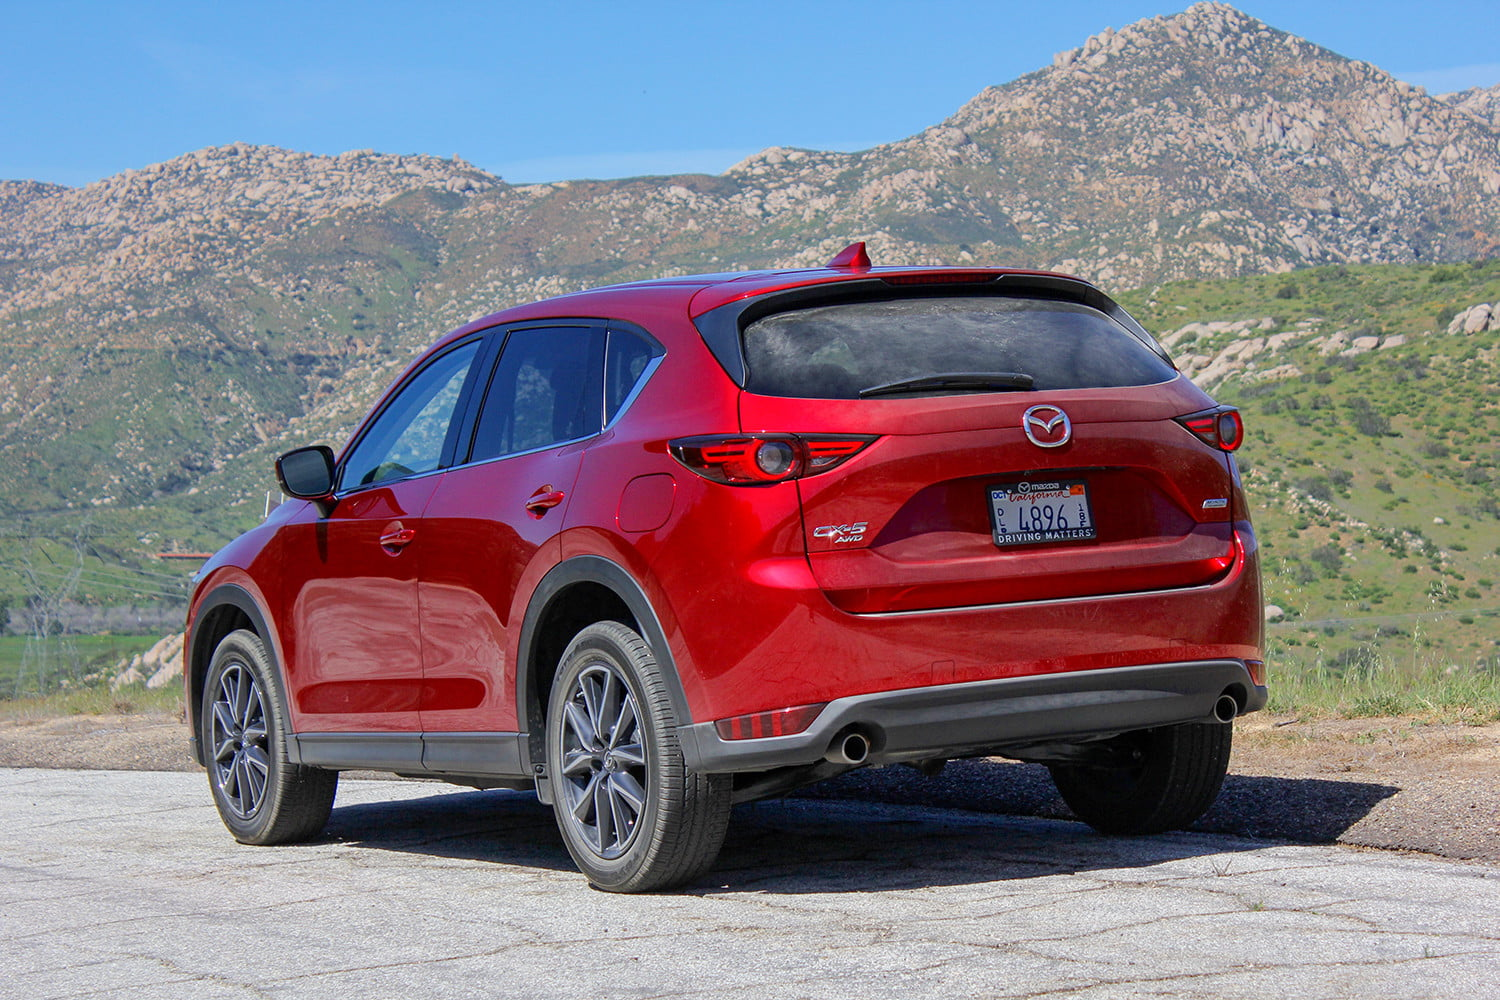 2017 mazda cx 5 review driving impressions specs digital trends. Black Bedroom Furniture Sets. Home Design Ideas